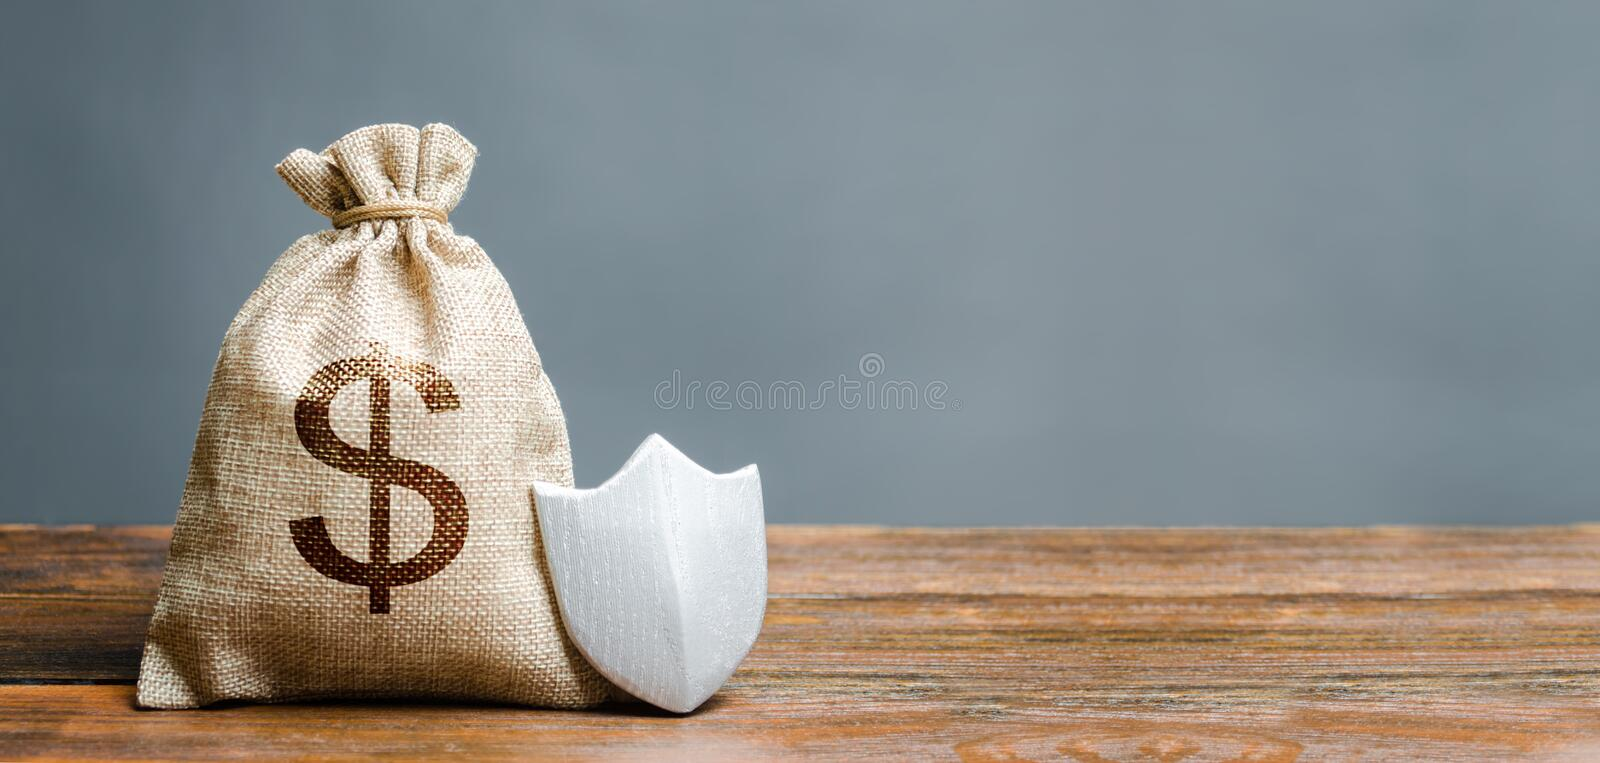 Bag with dollar symbol and protection shield. Concept of protection of money, guaranteed deposits. Client rights protection. Compensation for losses in stock photography